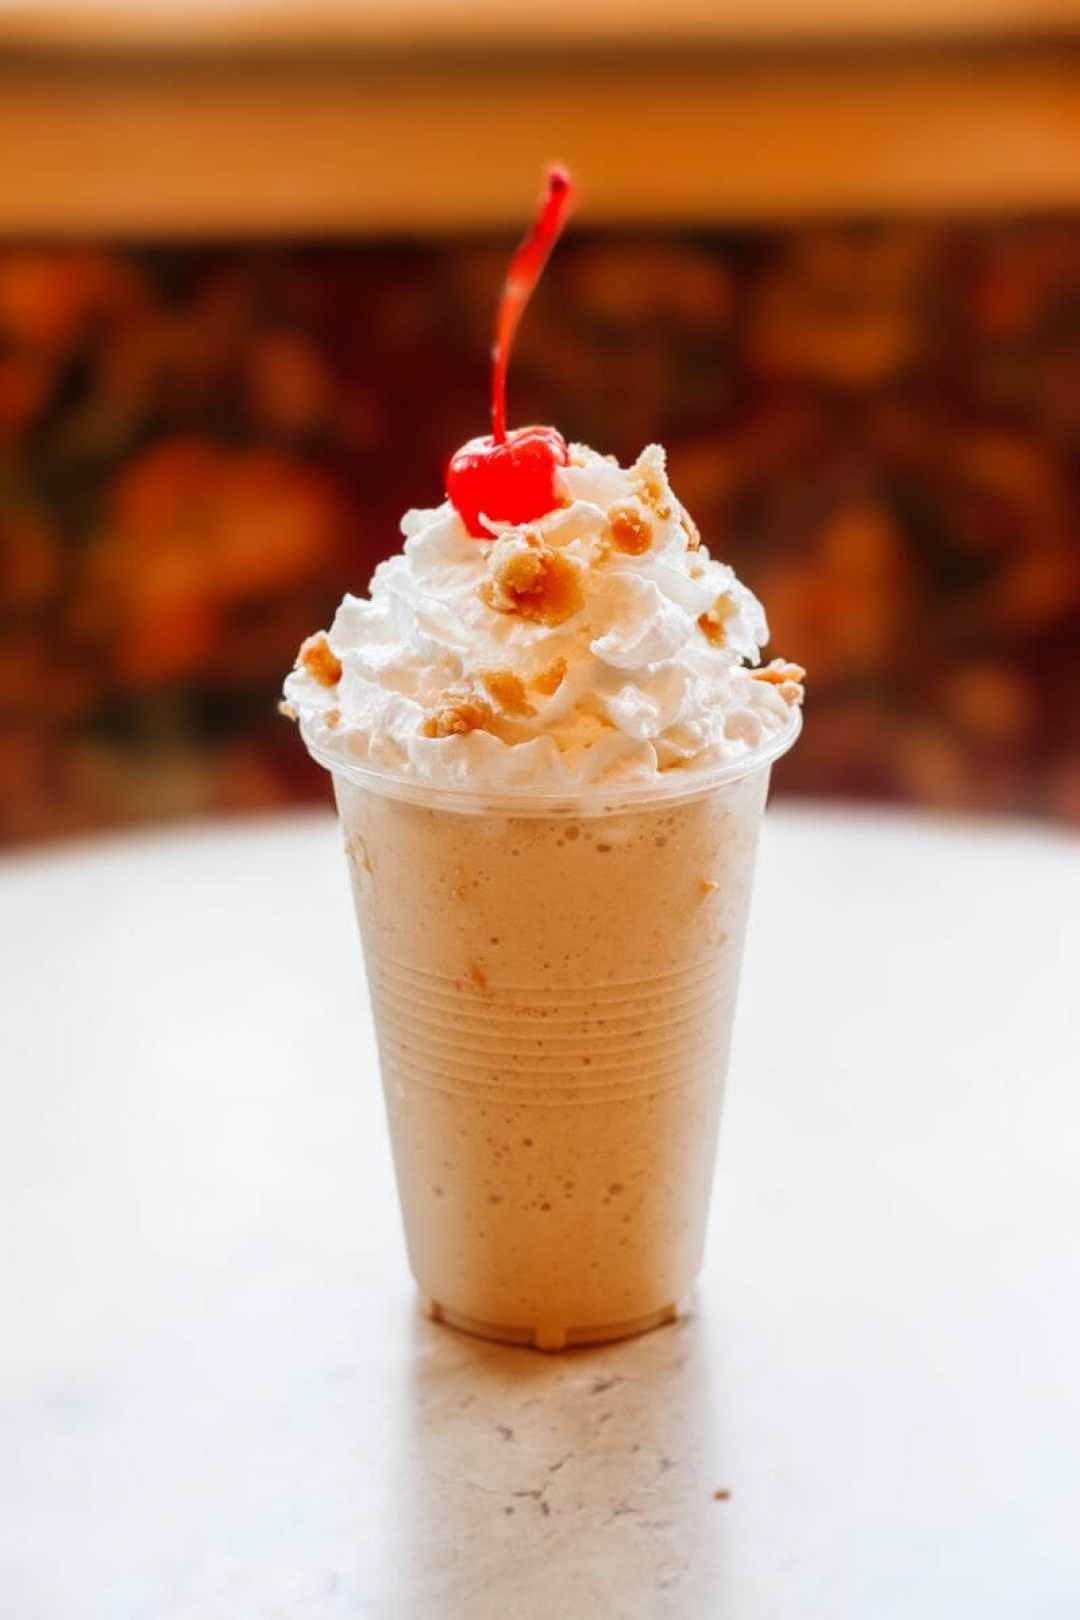 What To Eat At Dollywood This Fall: Dollywood Harvest Festival Great Pumpkin Luminights in Pigeon Forge TN by JC Phelps of JCP Eats, a Kentucky-based Food, Travel, and Lifestyle Blog